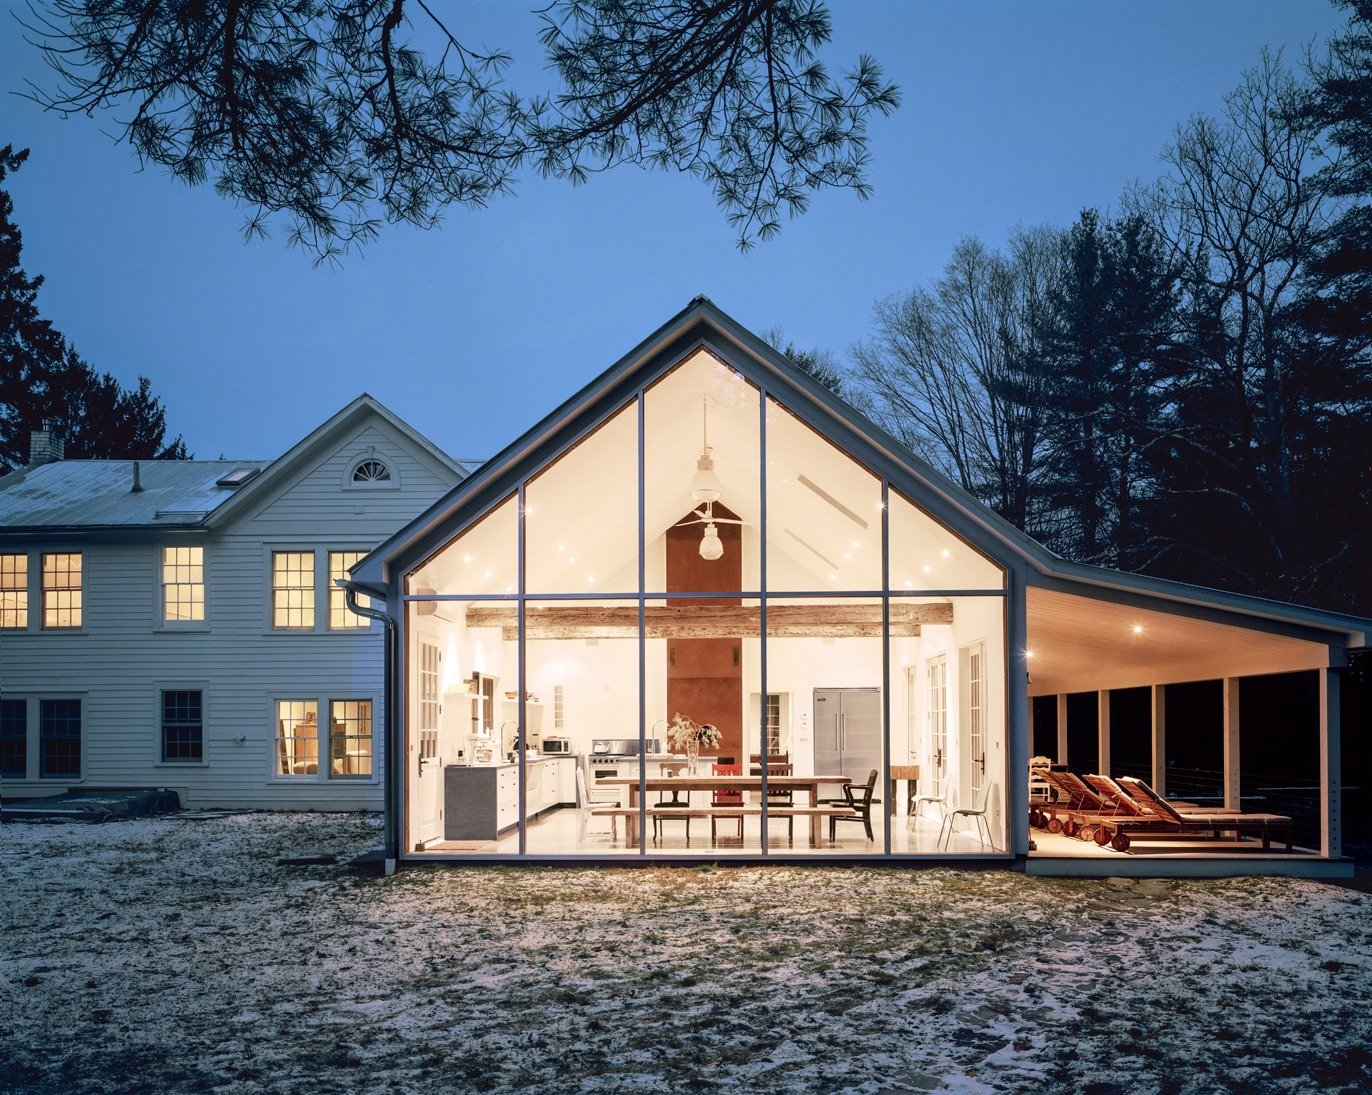 floating farmhouse Collection of 21 s by Tom Givone Dwell